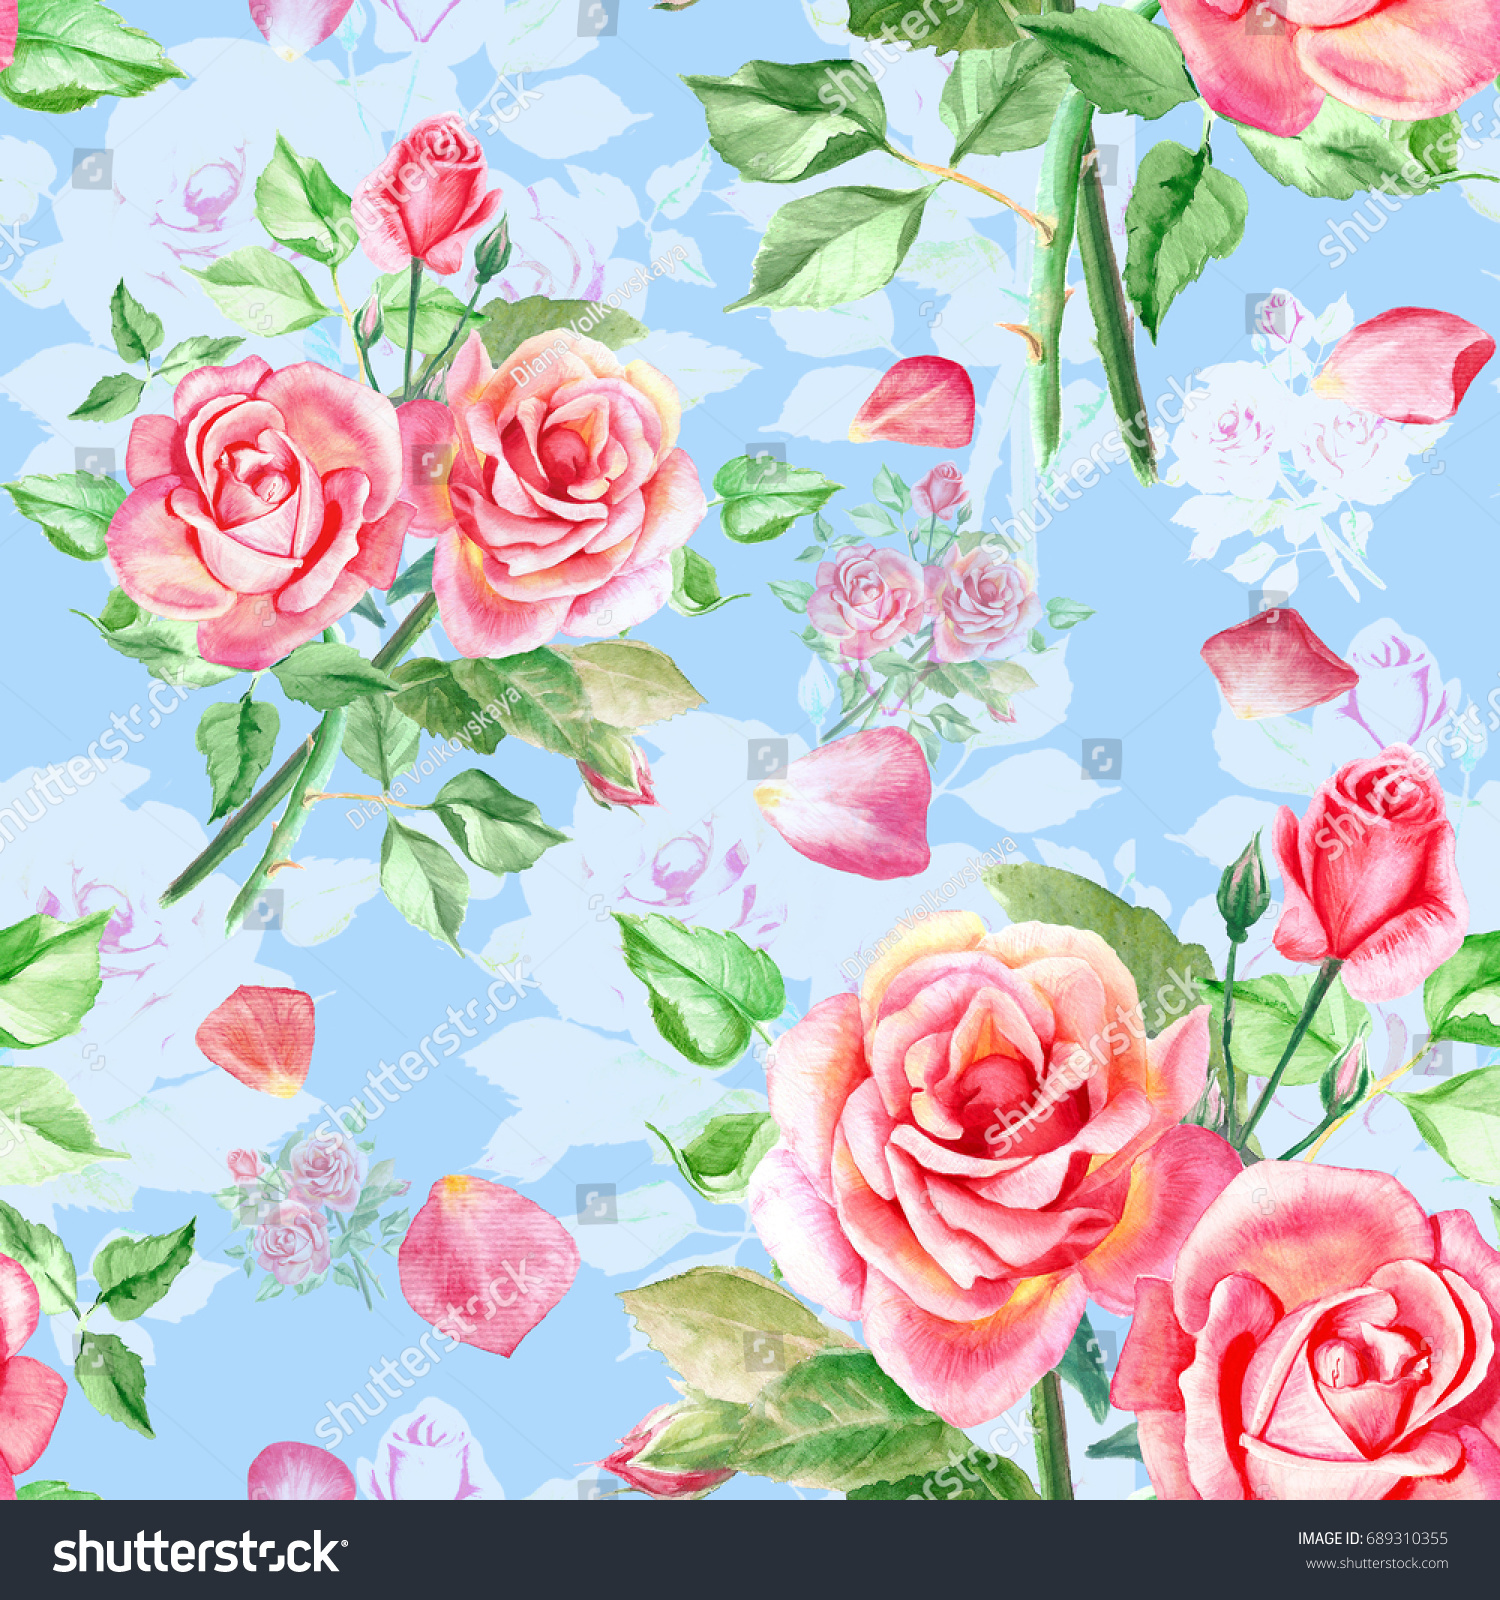 Seamless Watercolor Pink Roses Pattern With Rose Petals Bouquet Of